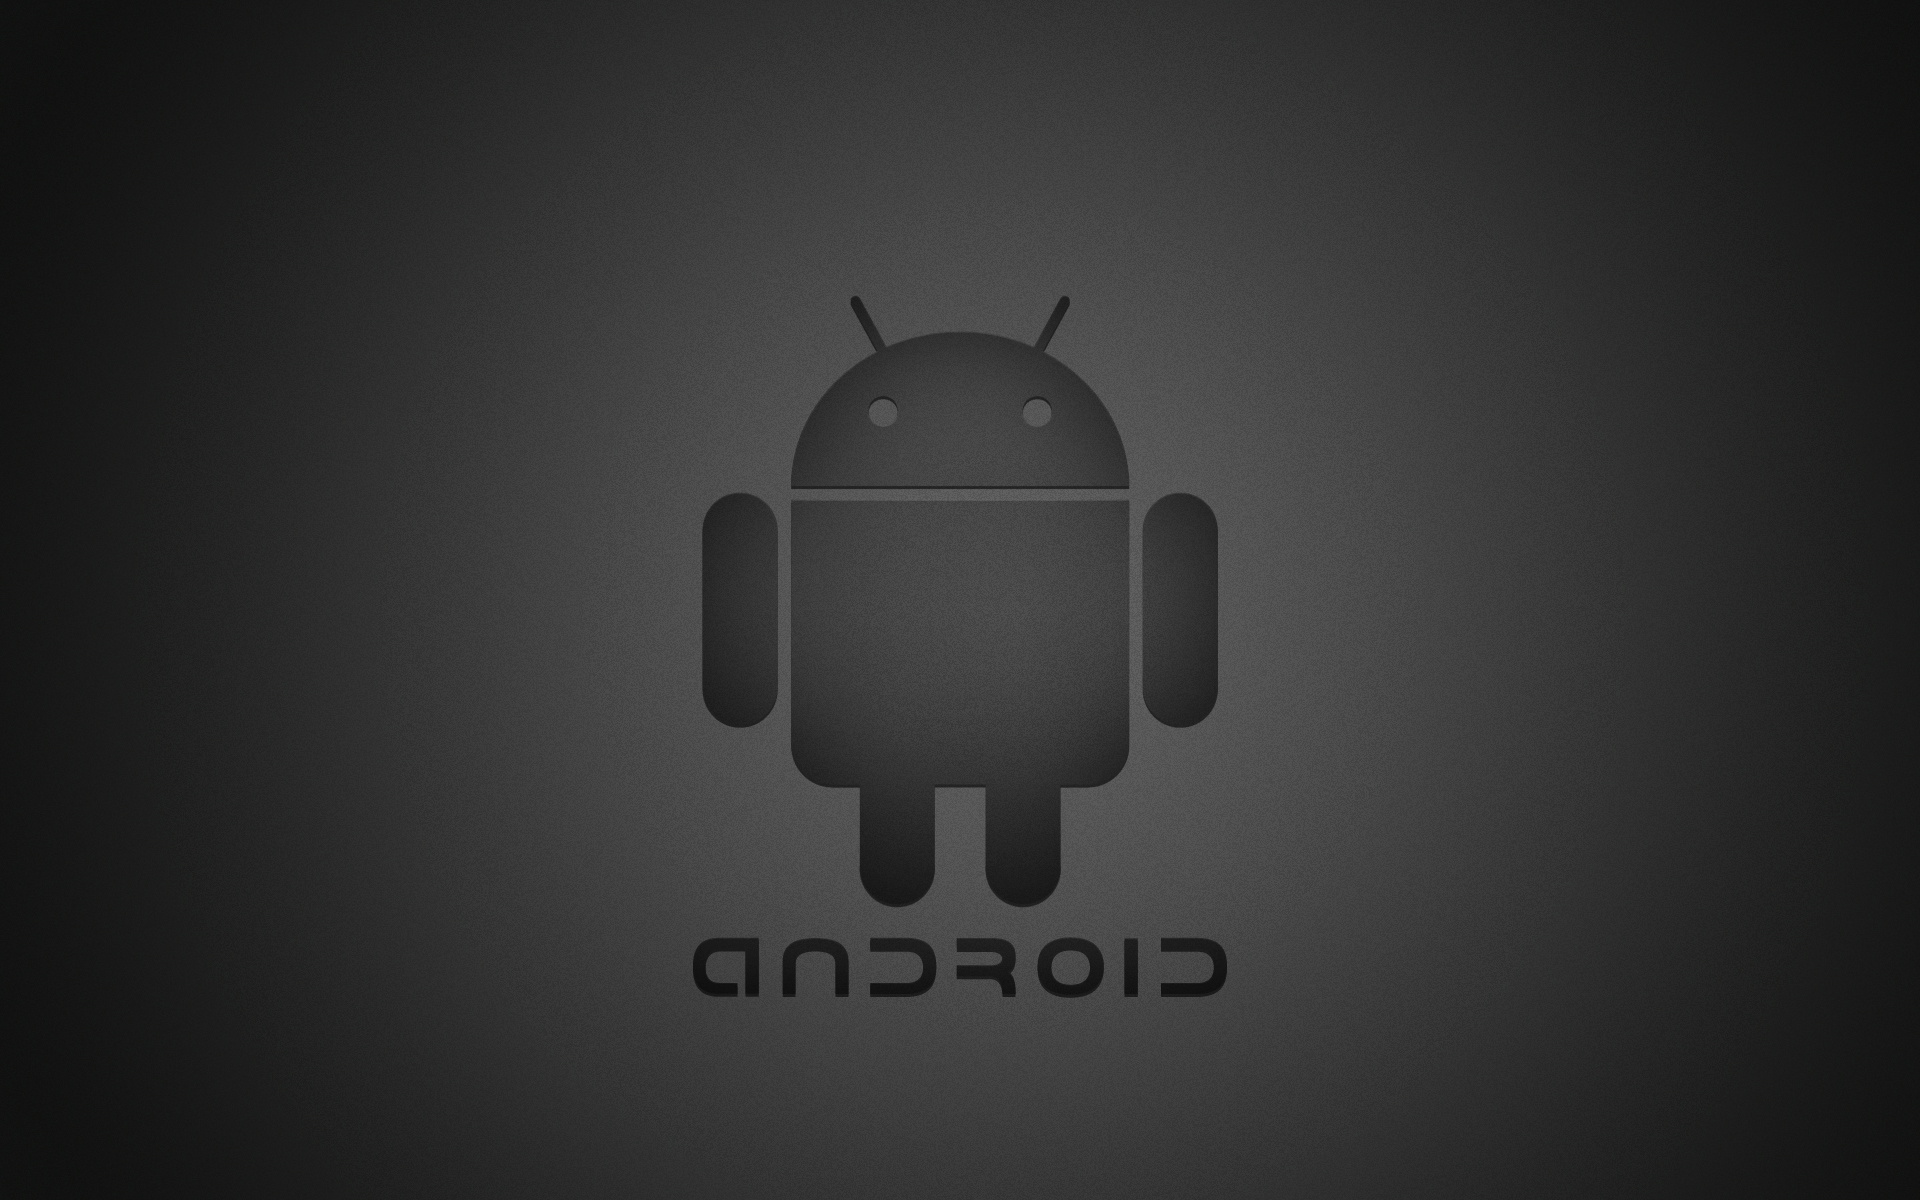 Android backgrounds pictures images android widescreen background voltagebd Gallery